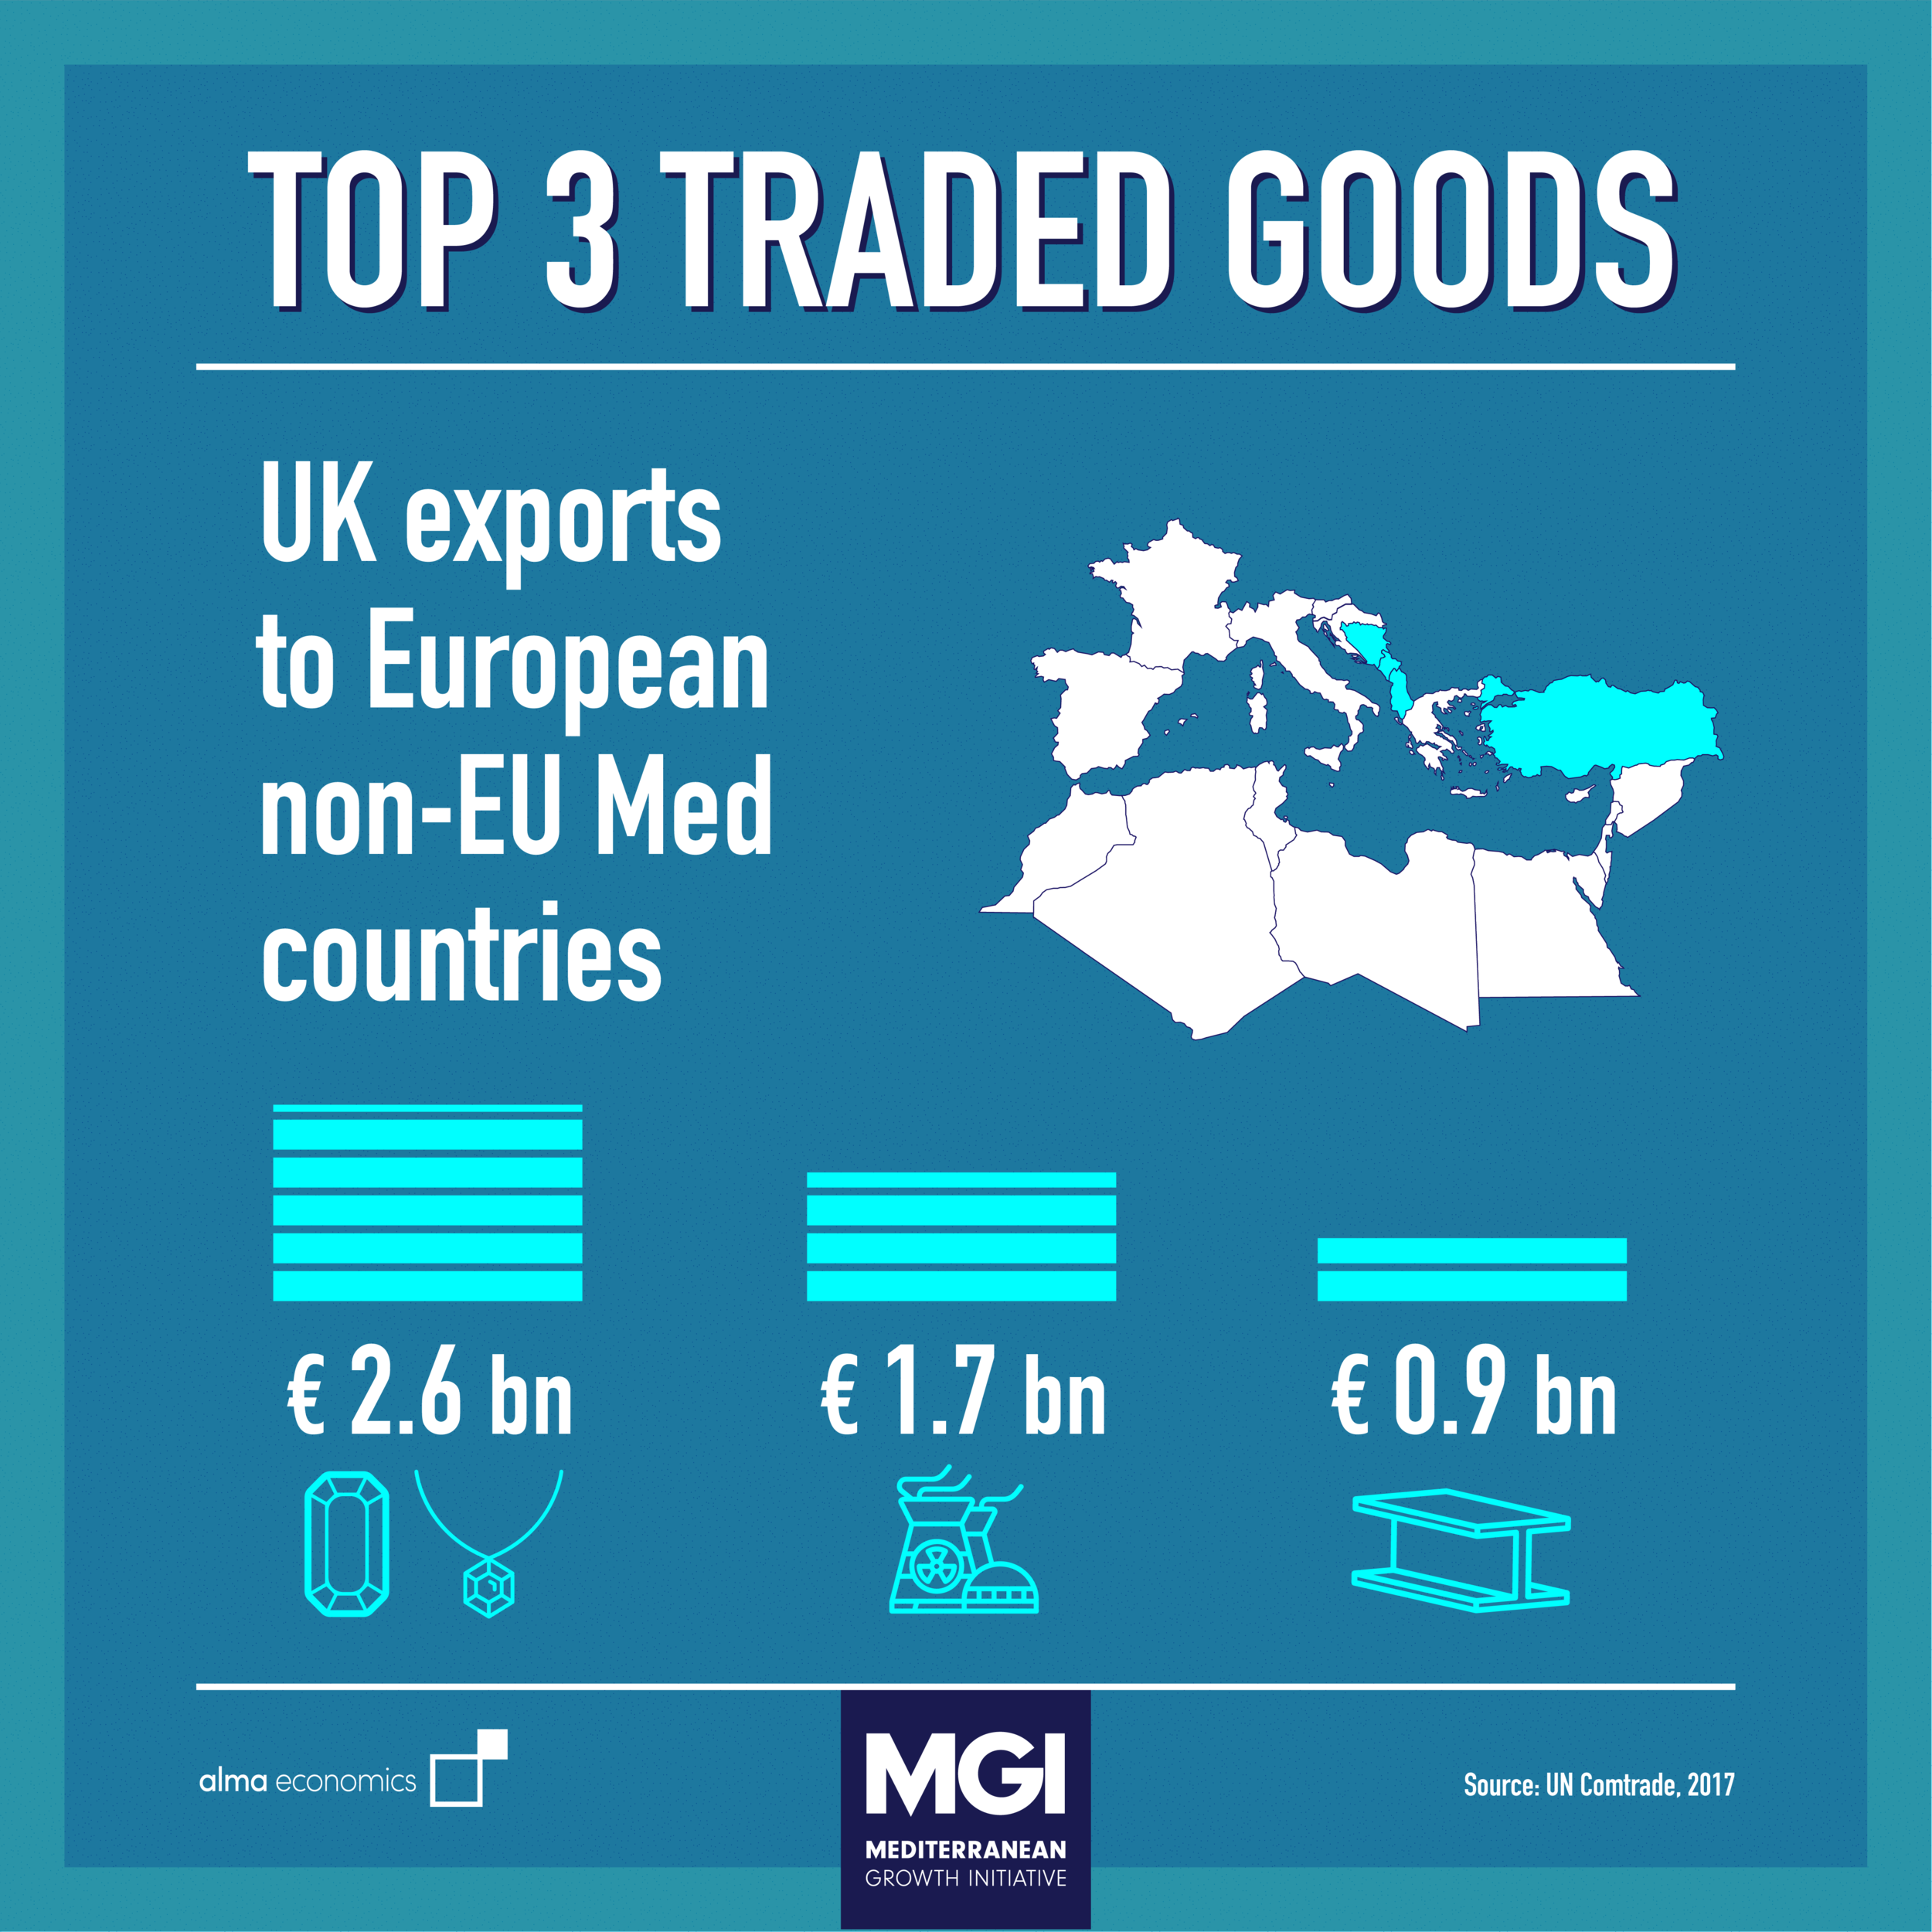 - Top 3 Traded GoodsPrecious and semi-precious stones are the UK's largest export to European Med countries (excluding EU), while cars and car parts its largest import